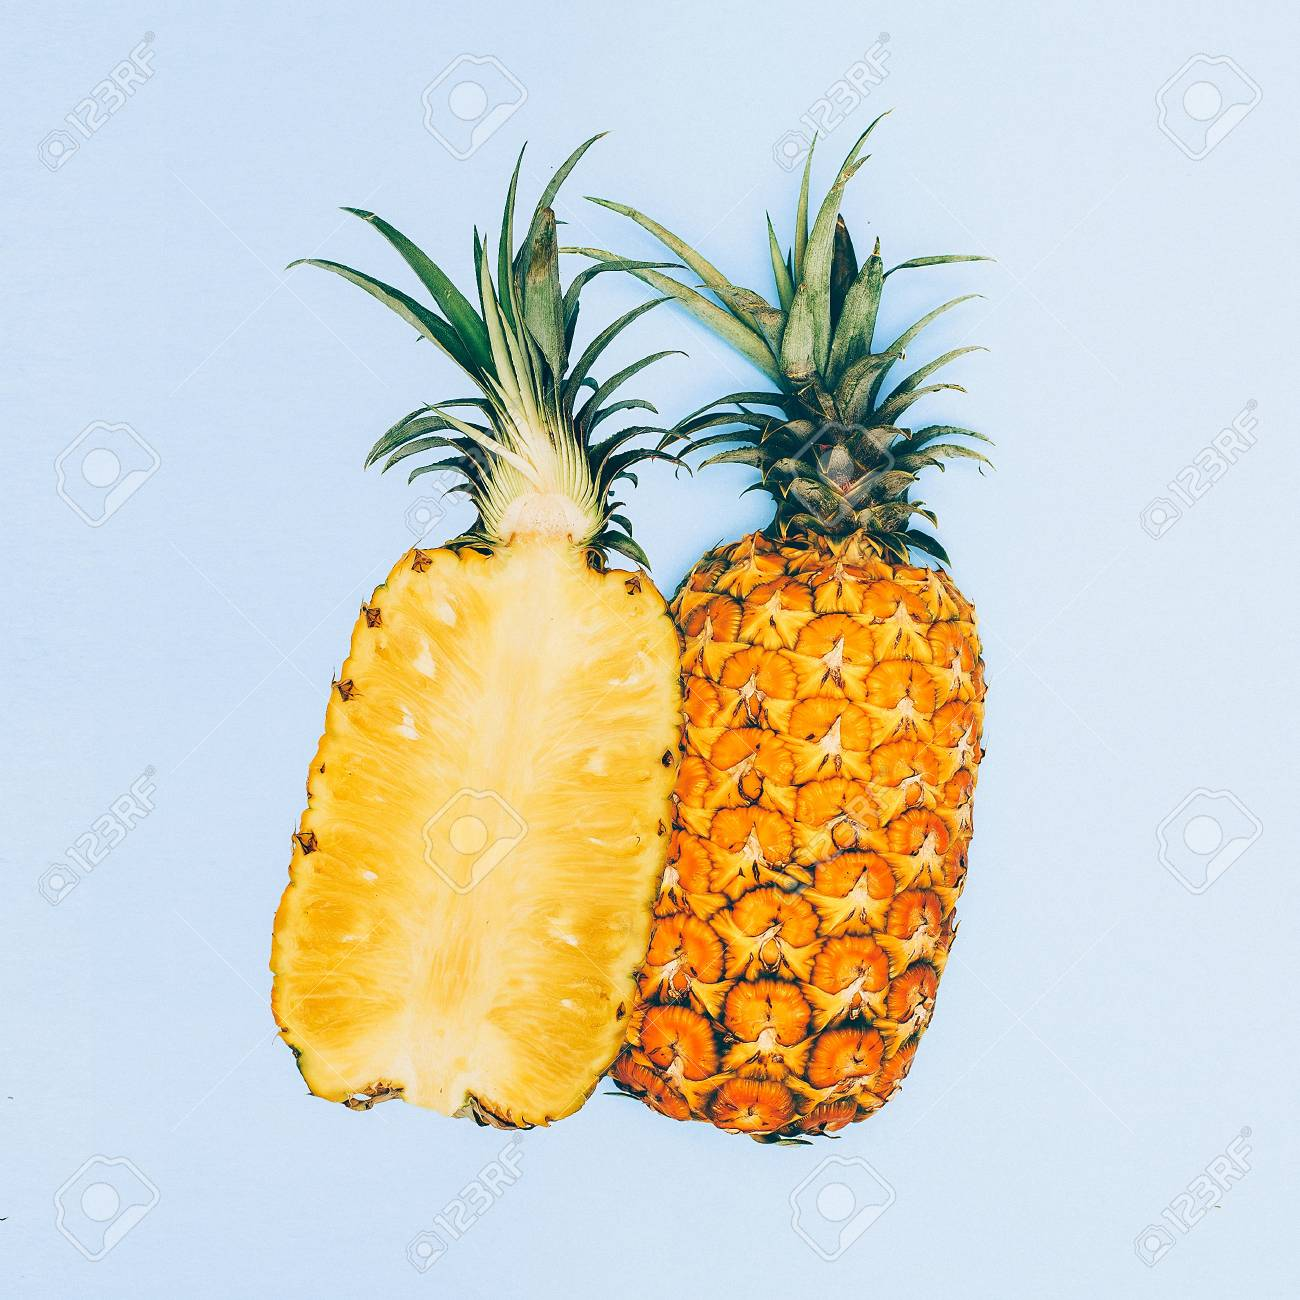 Fashion Design Geometry Minimal Art Fruit Pineapple Stock Photo Picture And Royalty Free Image Image 77224652